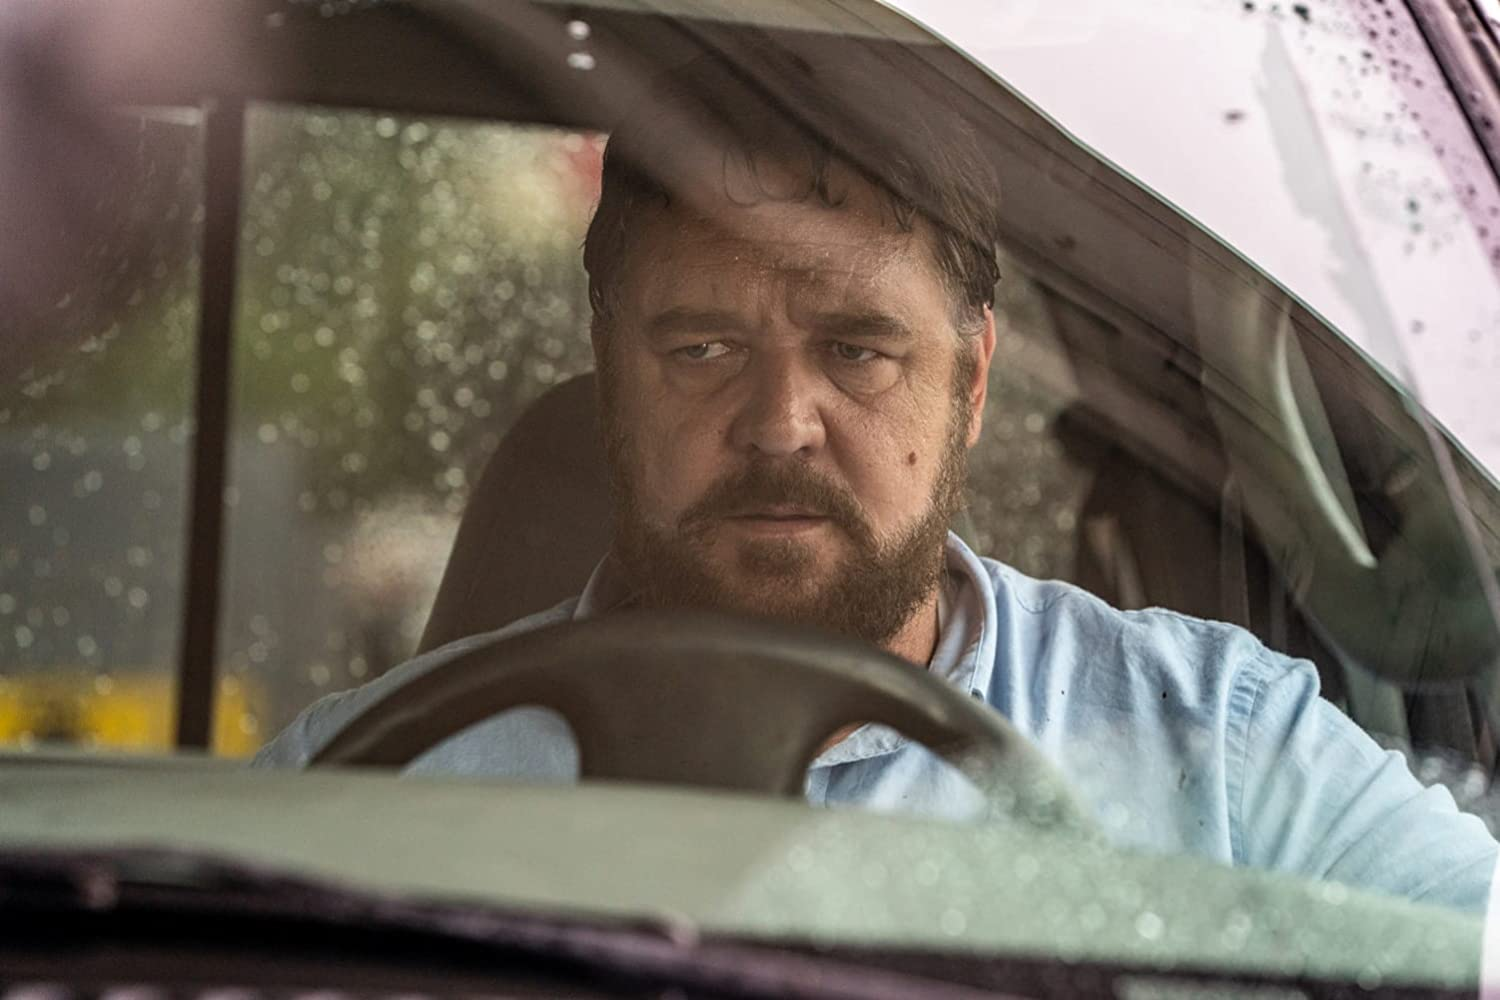 Unhinged is sold as a nail-biter about the dangers of road rage, but Crowe's character is motivated by something far more dangerous: explosive misogyny.